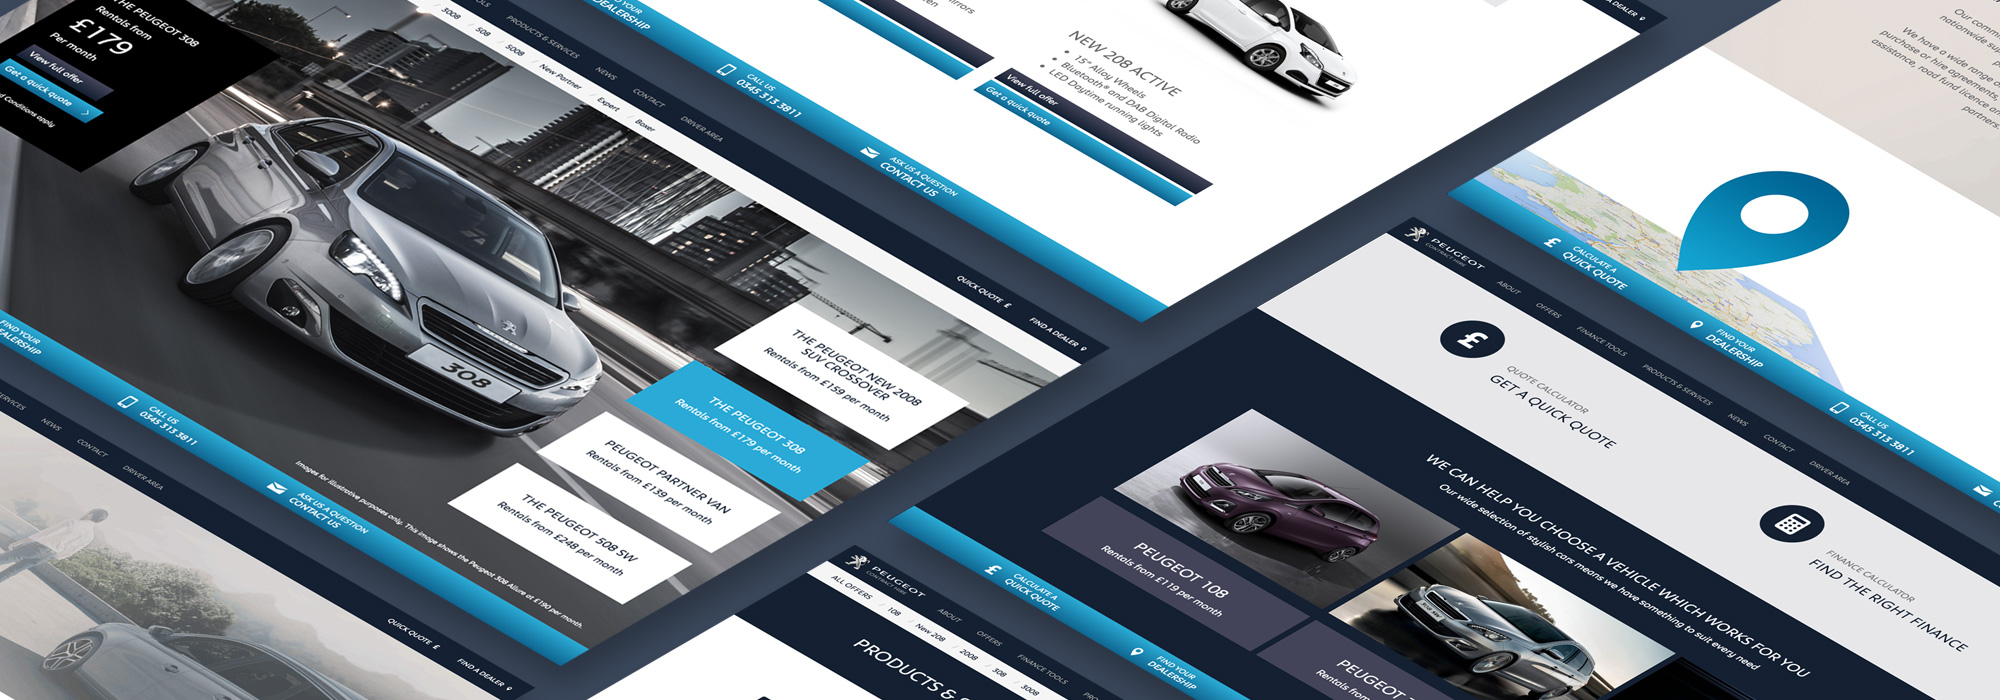 Peugeot Contract Hire Website